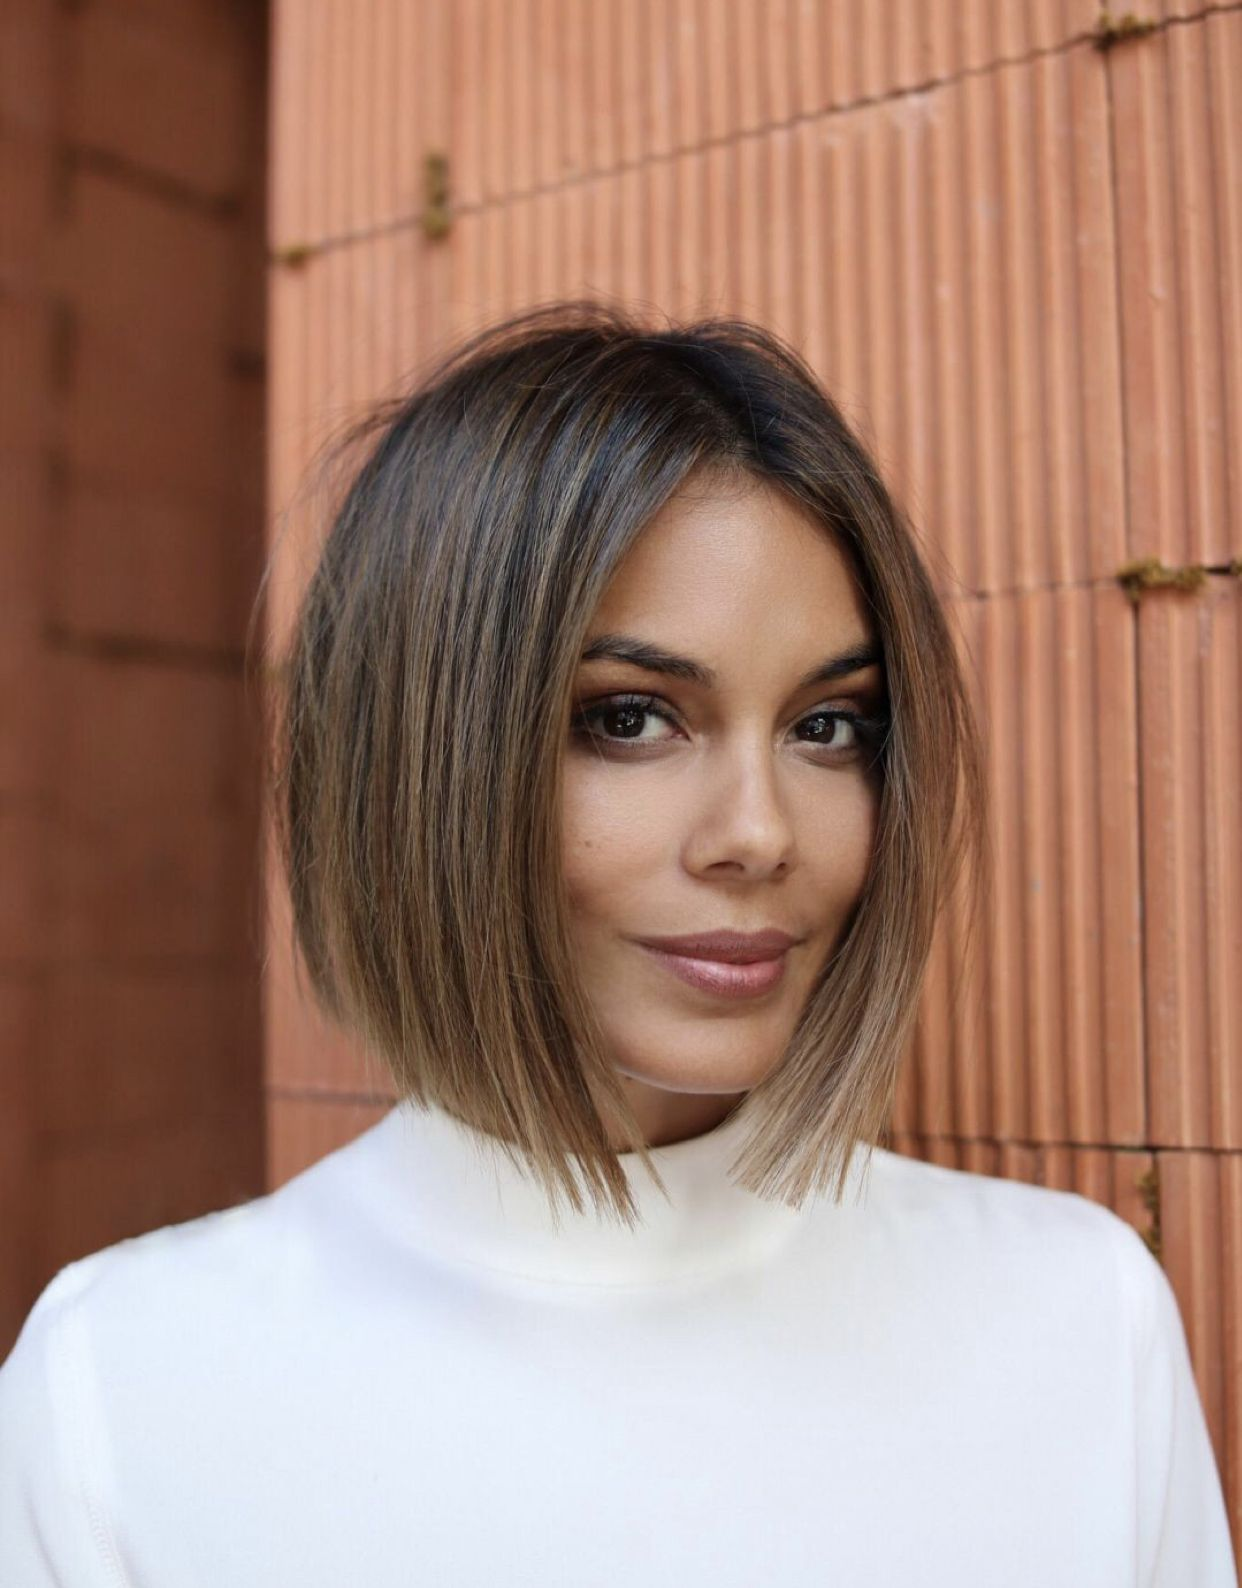 Pin on 20172019 Popular Hairstyles